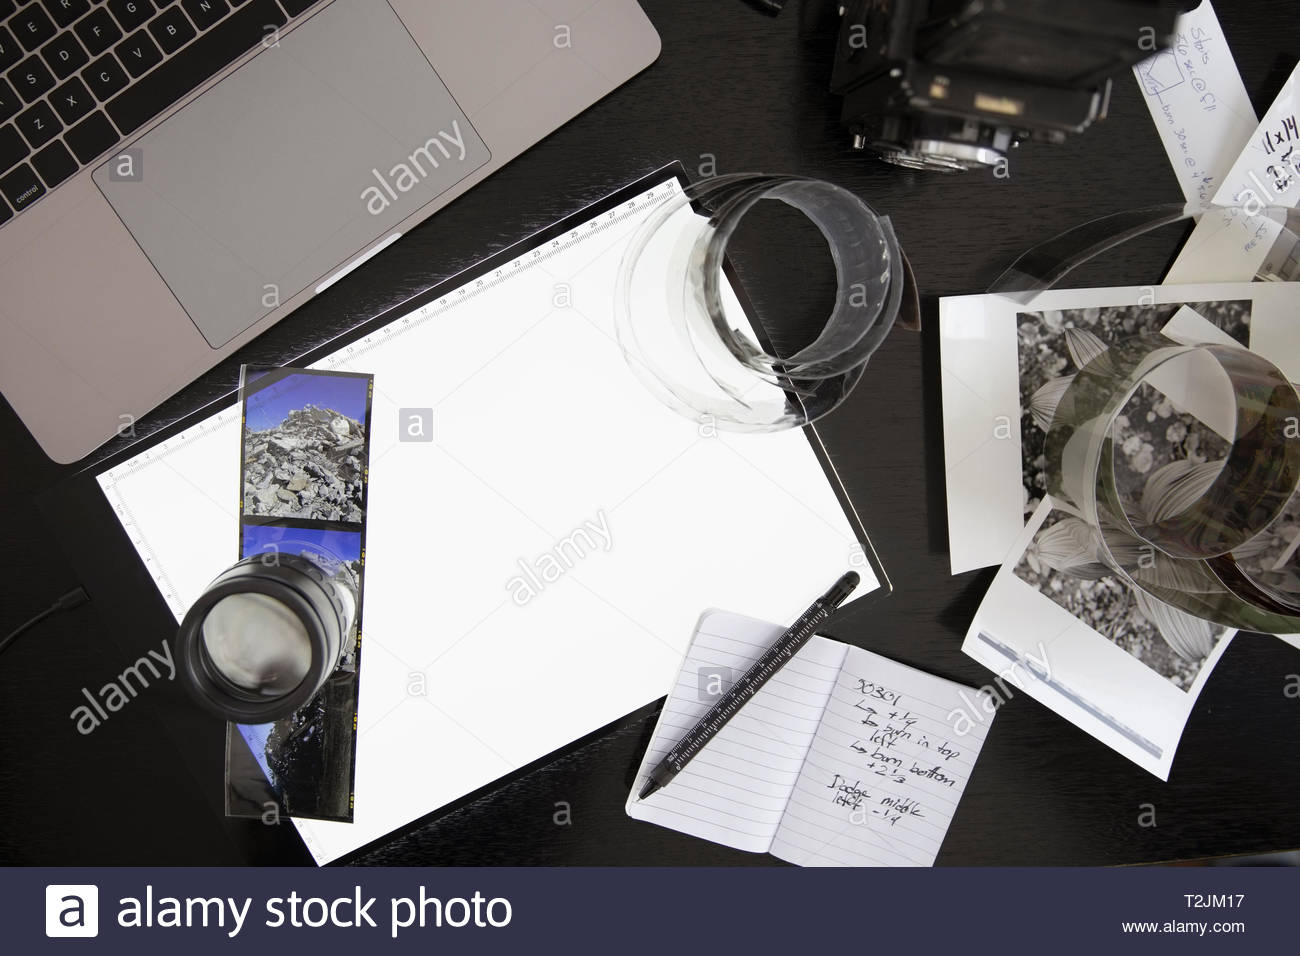 View from above photography light table and negatives on desk - Stock Image